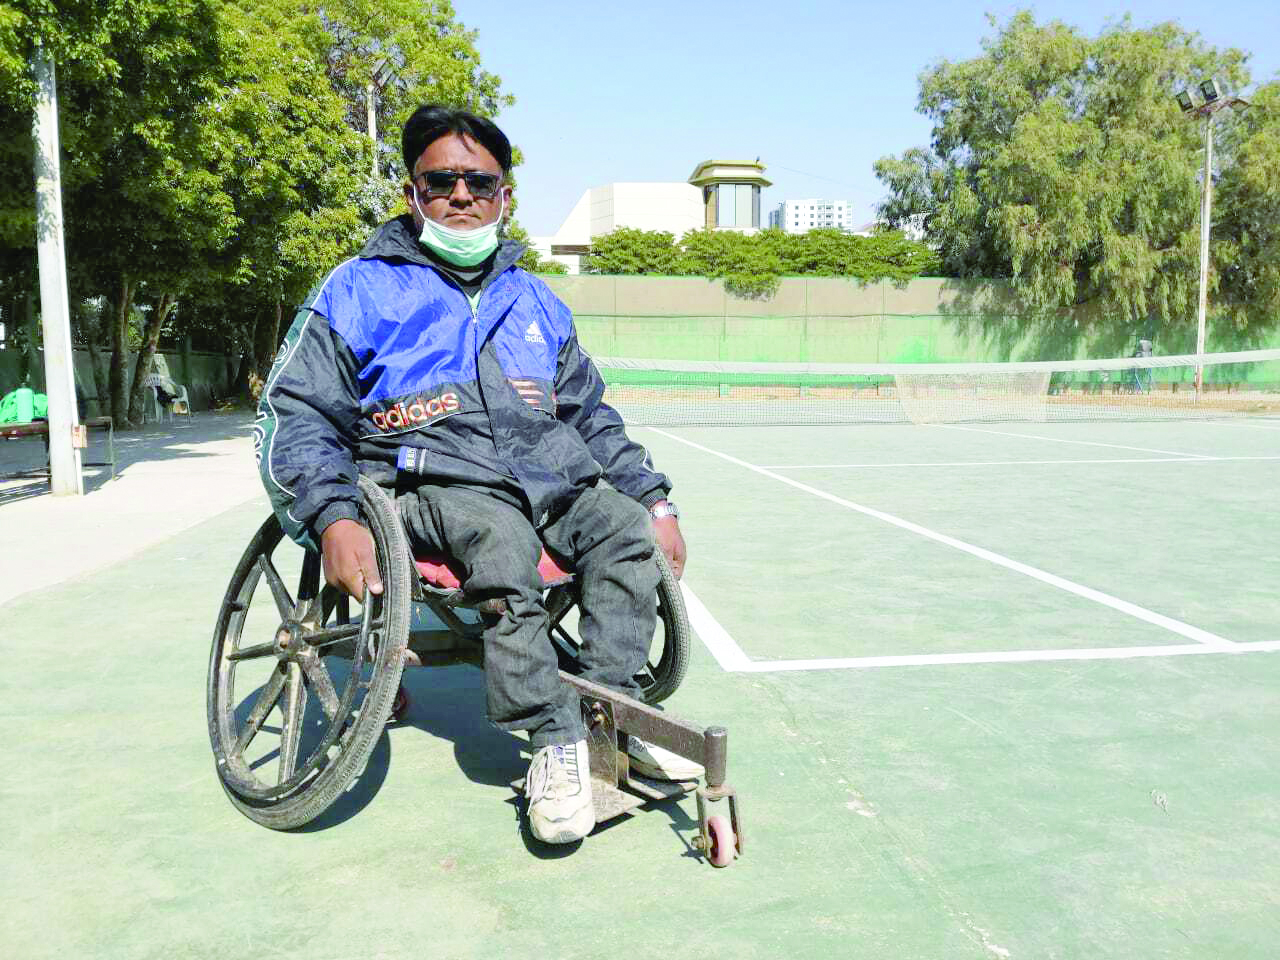 of breaking barriers and mobilising others